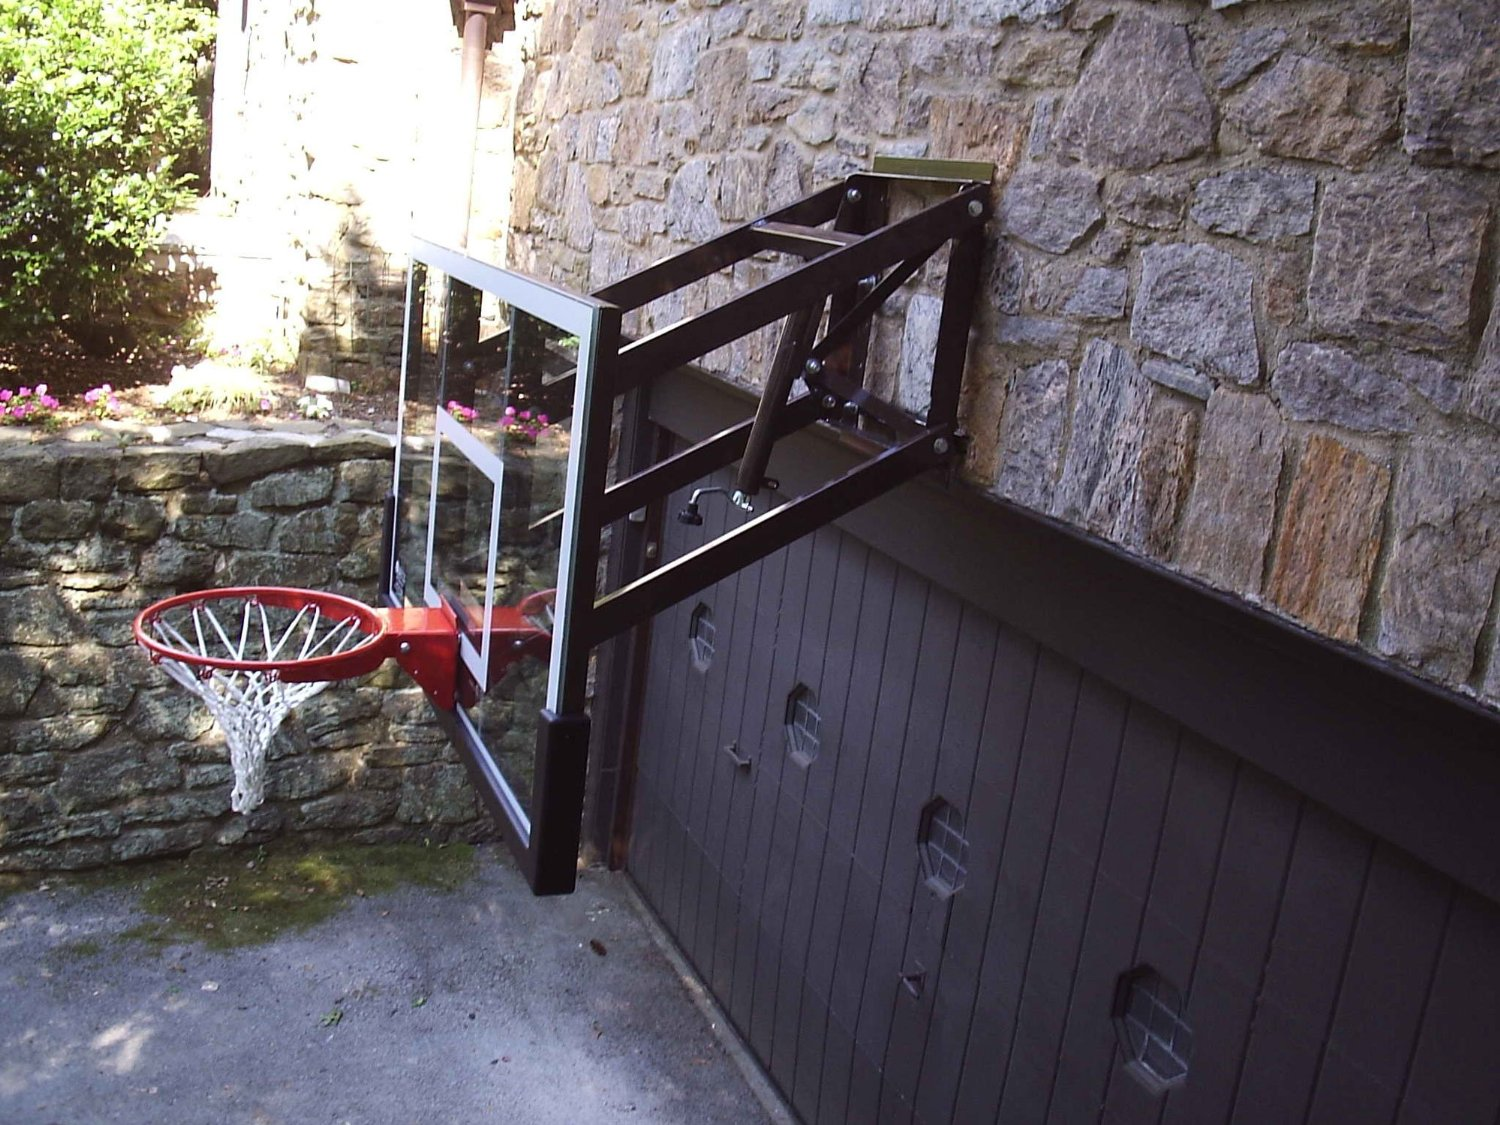 When A Wall Mount Basket Ball Hoop Is The Right Choice